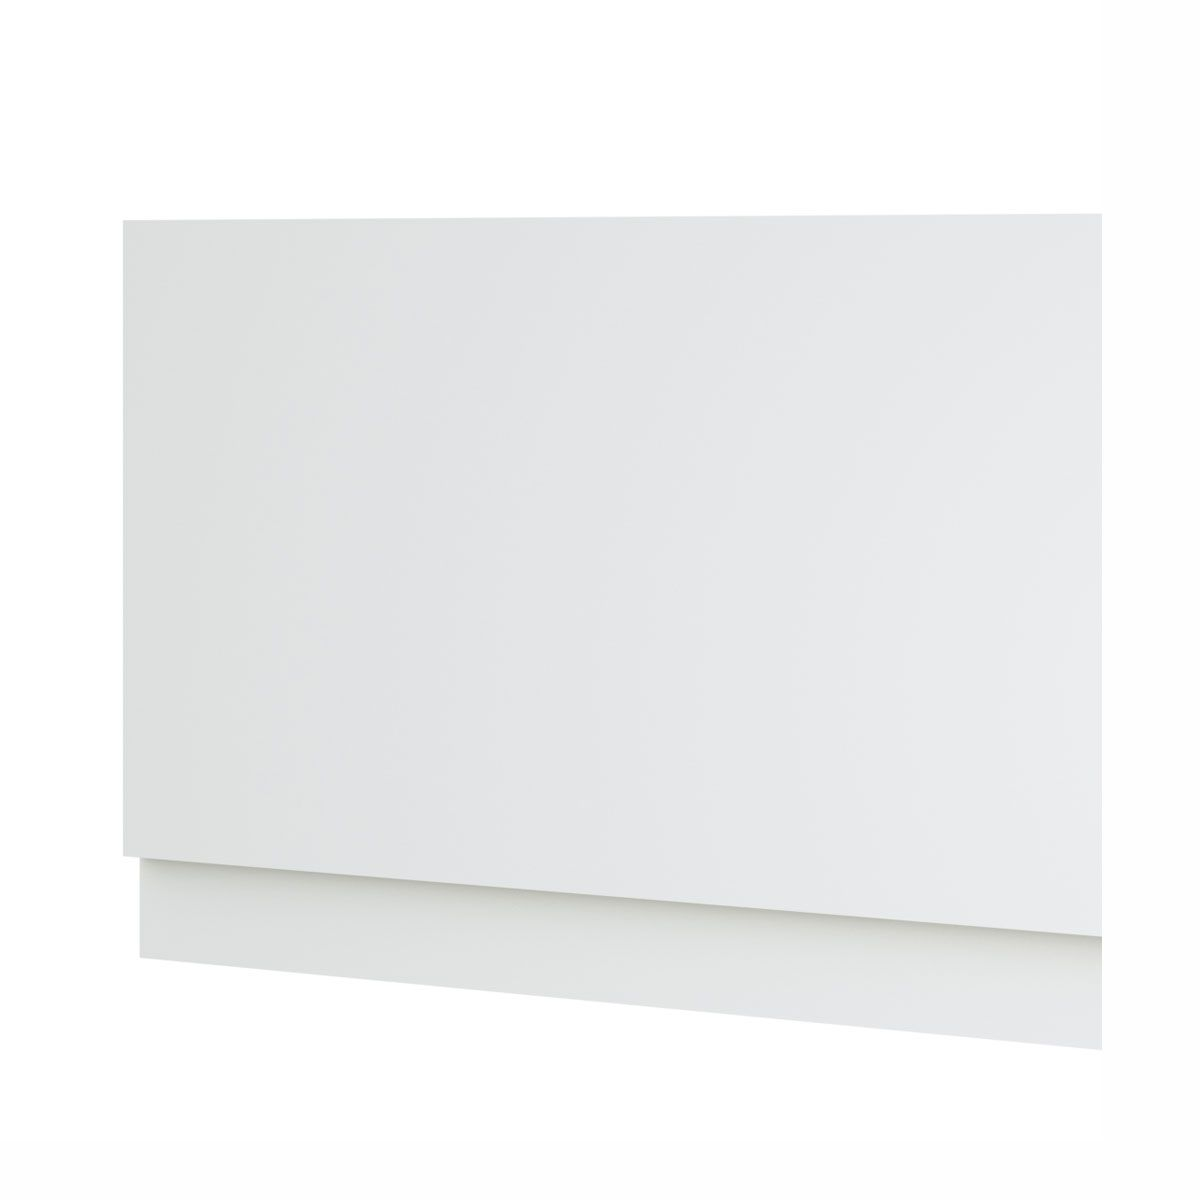 Kartell Purity White 2 Piece Bath End Panel 700mm